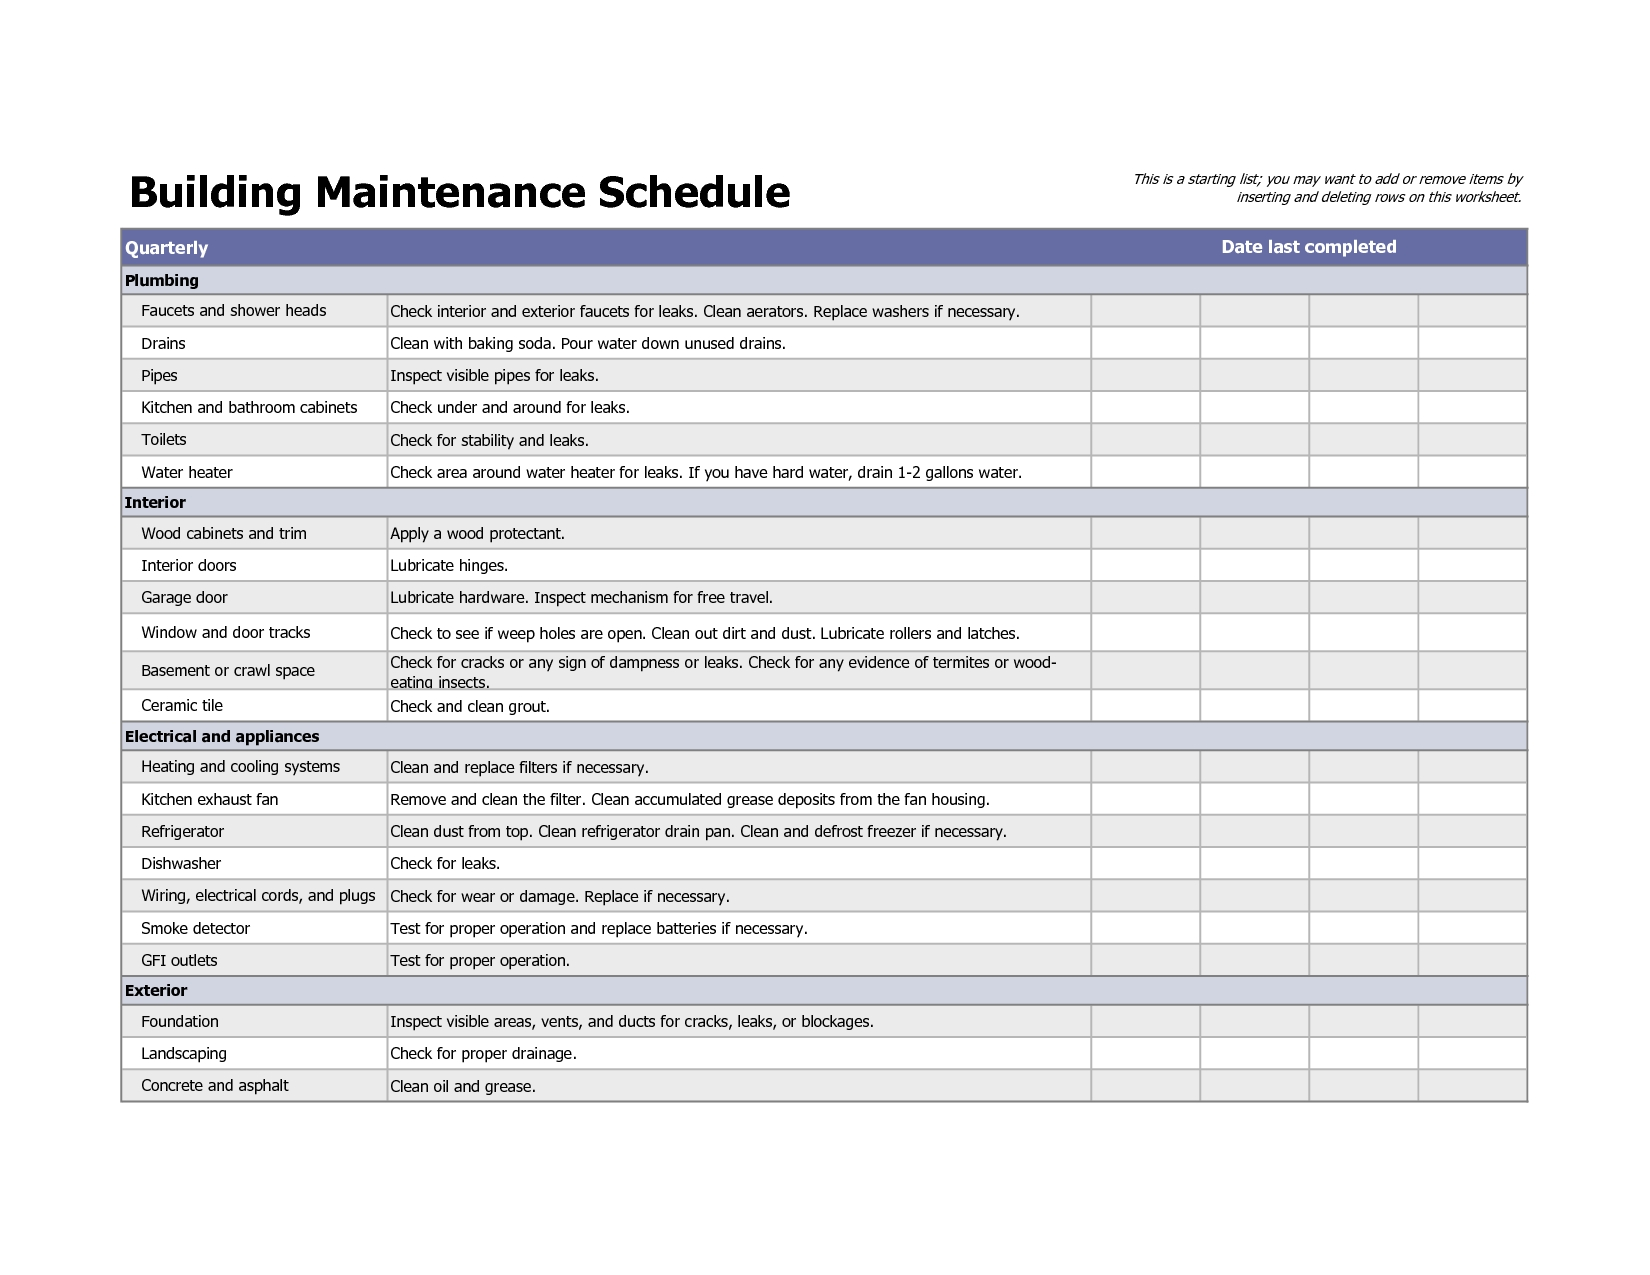 Building Maintenance Schedule Excel Template | planner template free